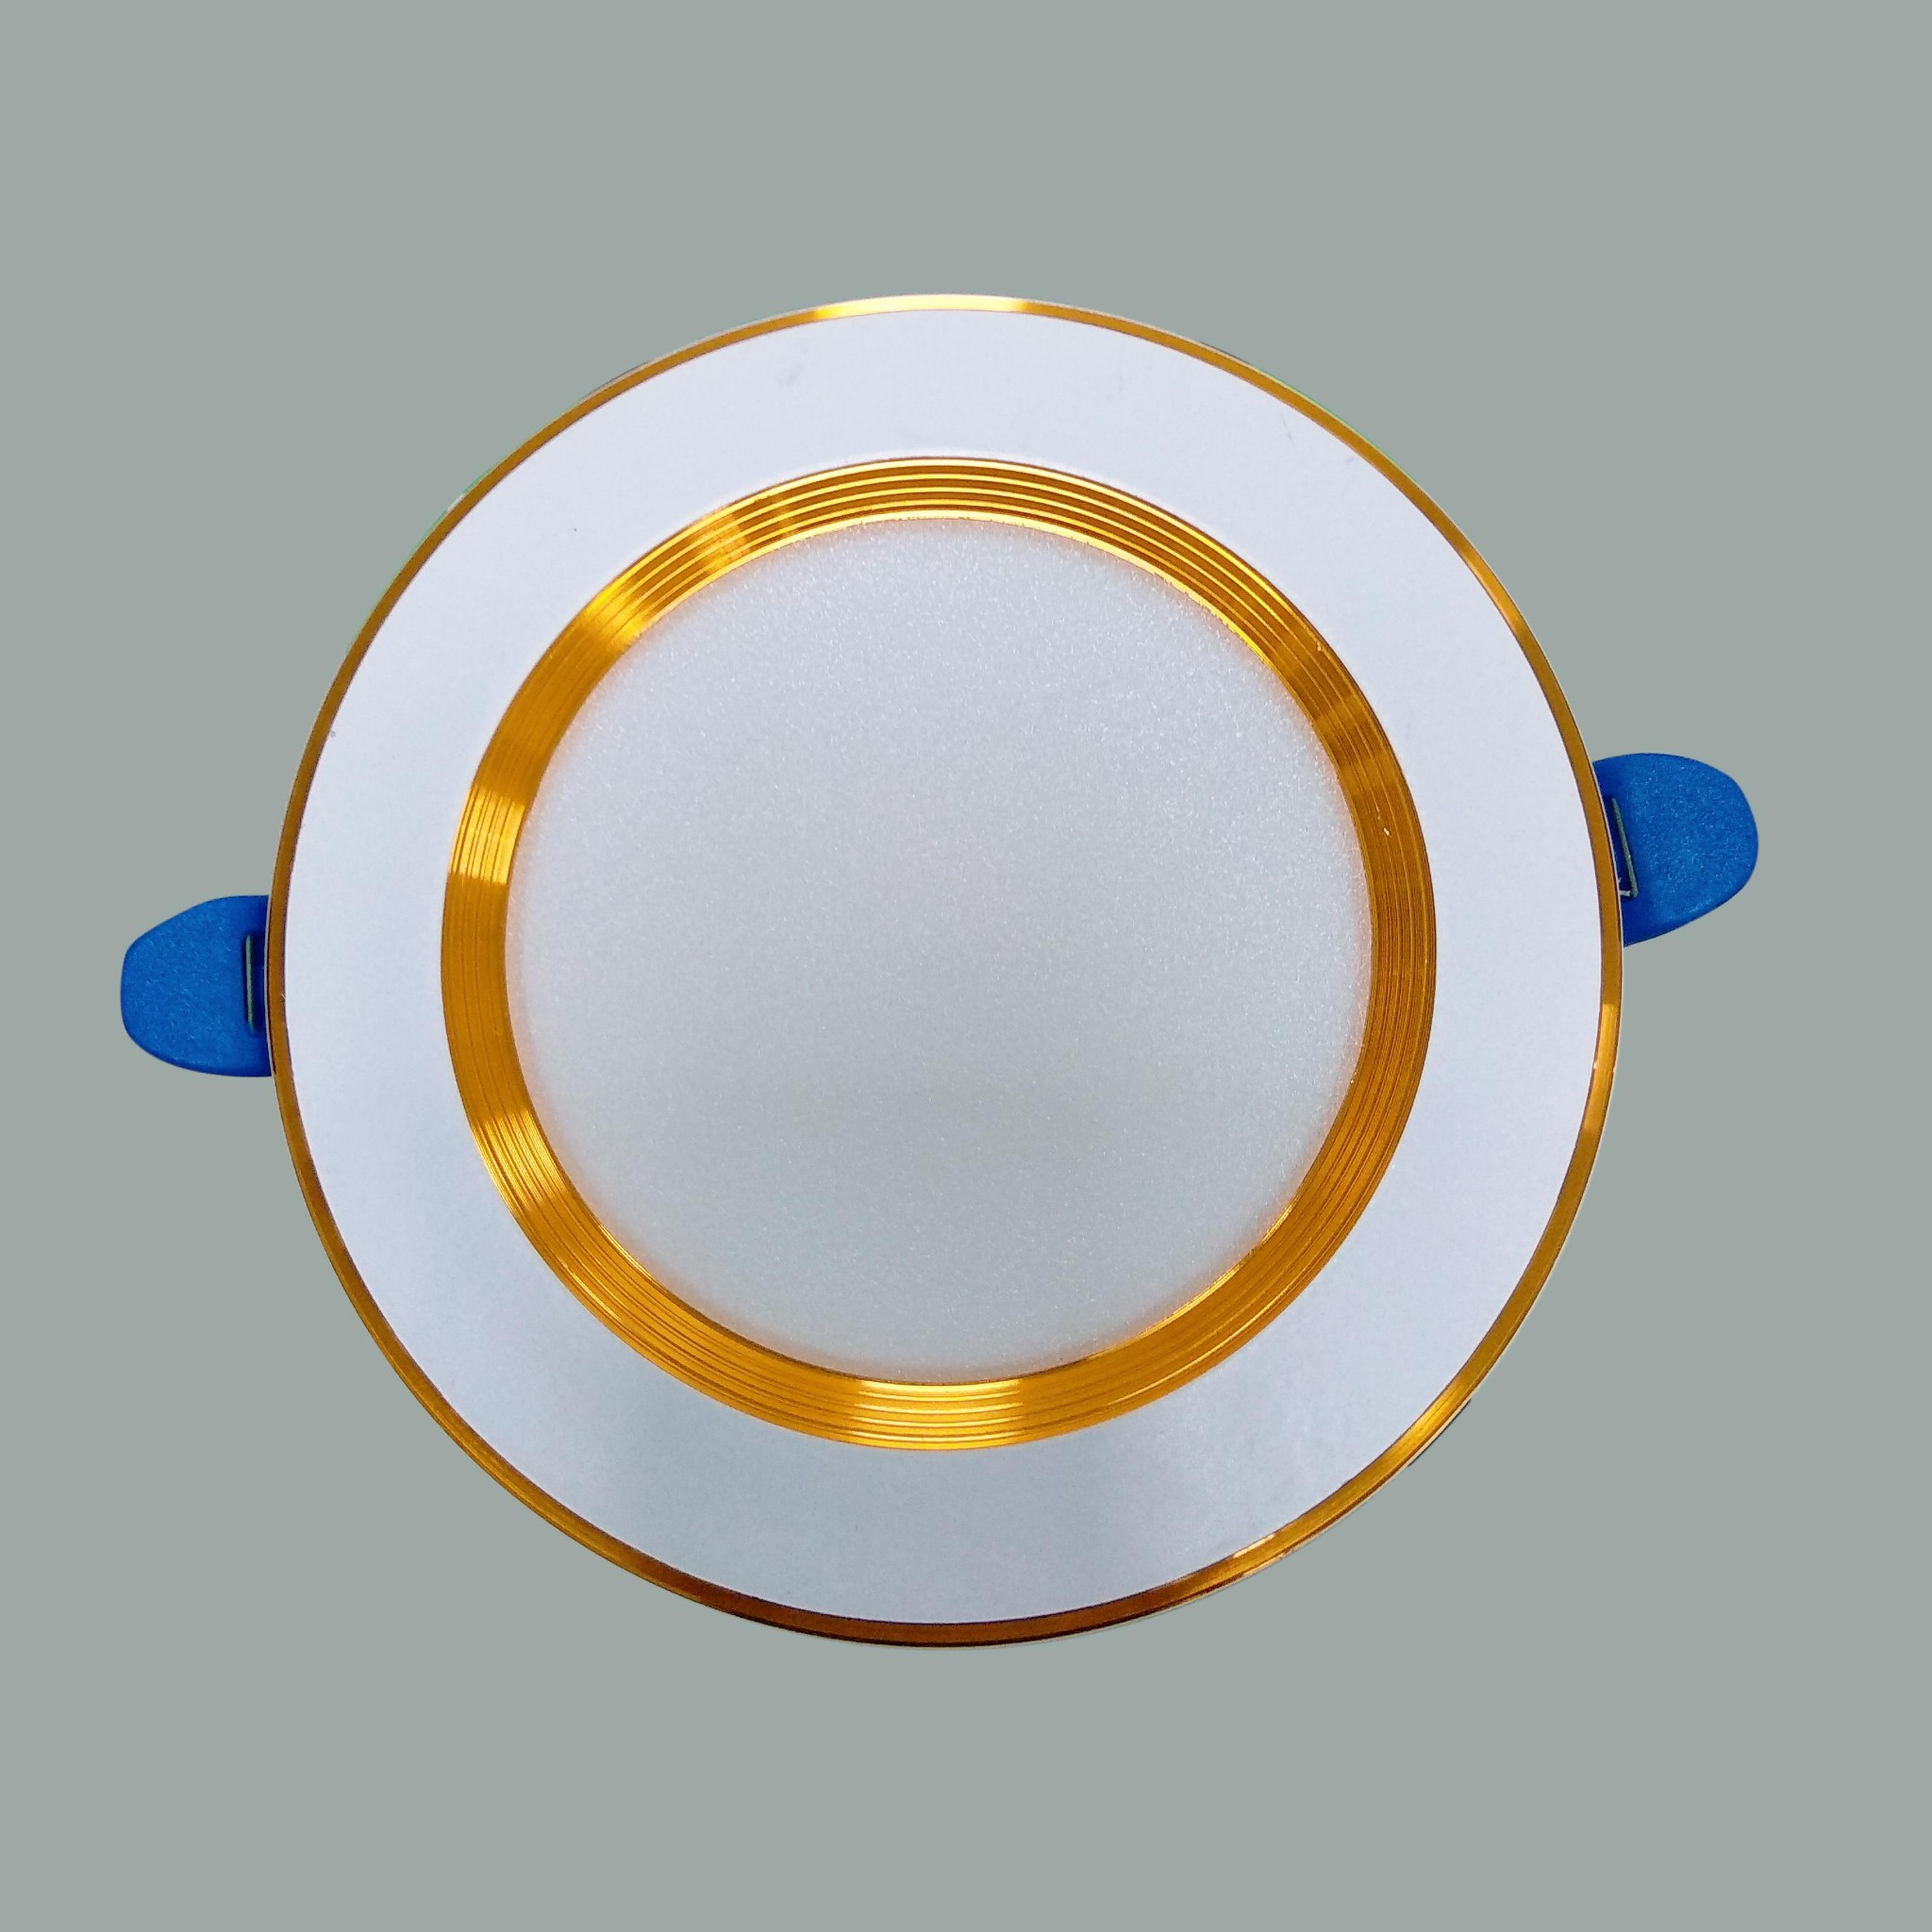 /products/den-led-downlight-vien-vang-doi-mau-d04v-5w